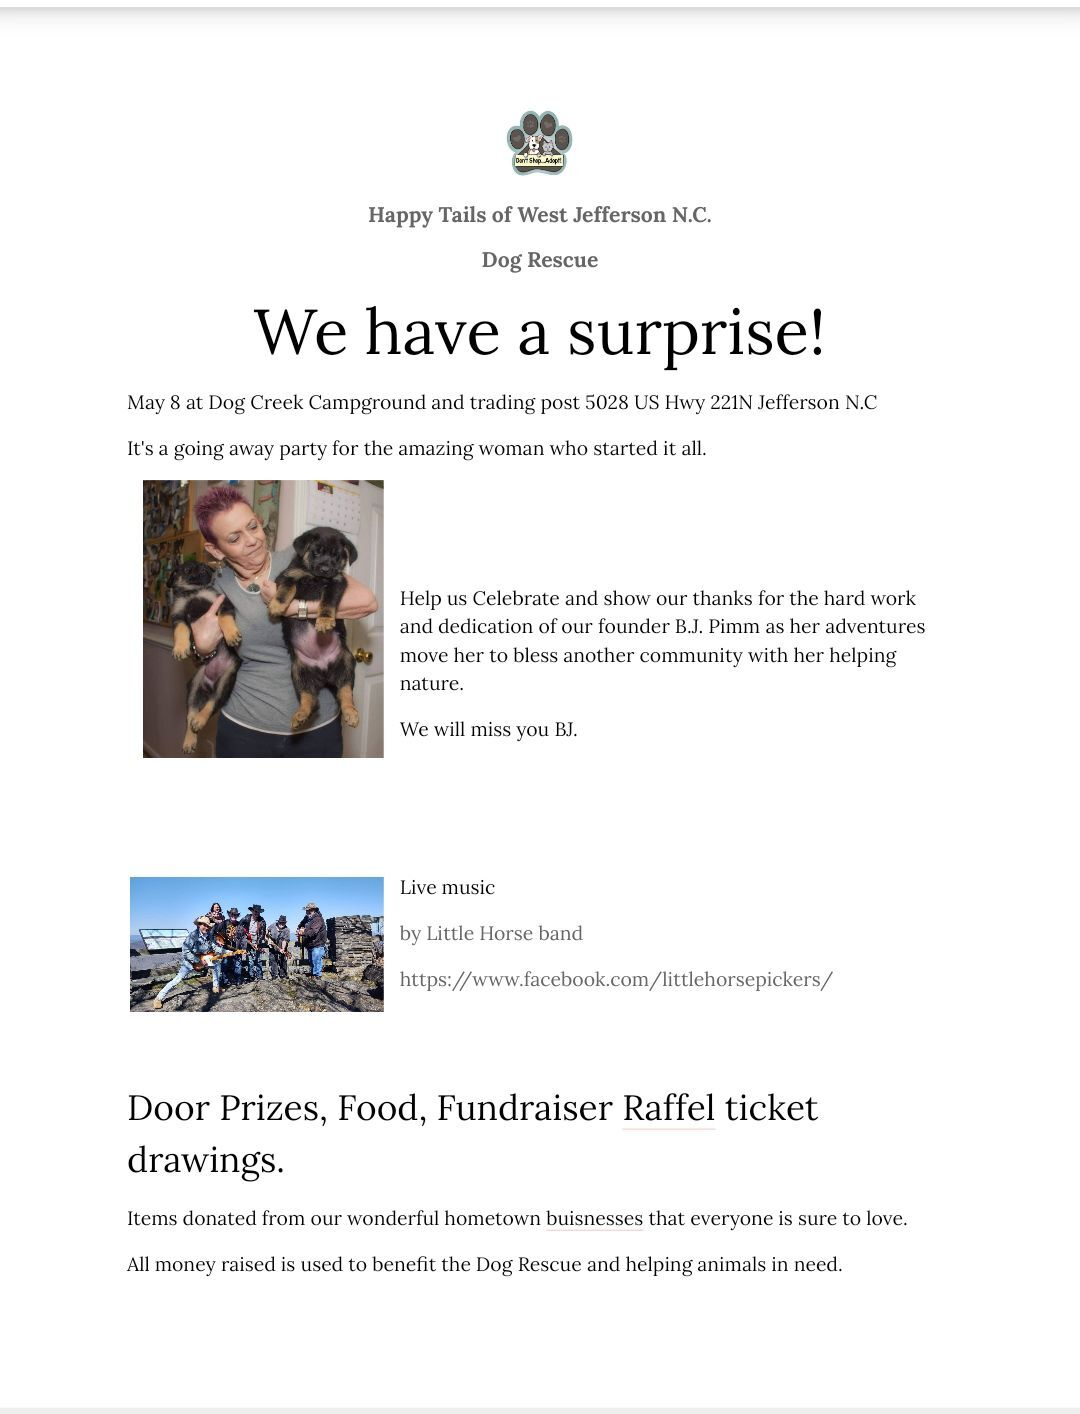 Happy tails flyer 2